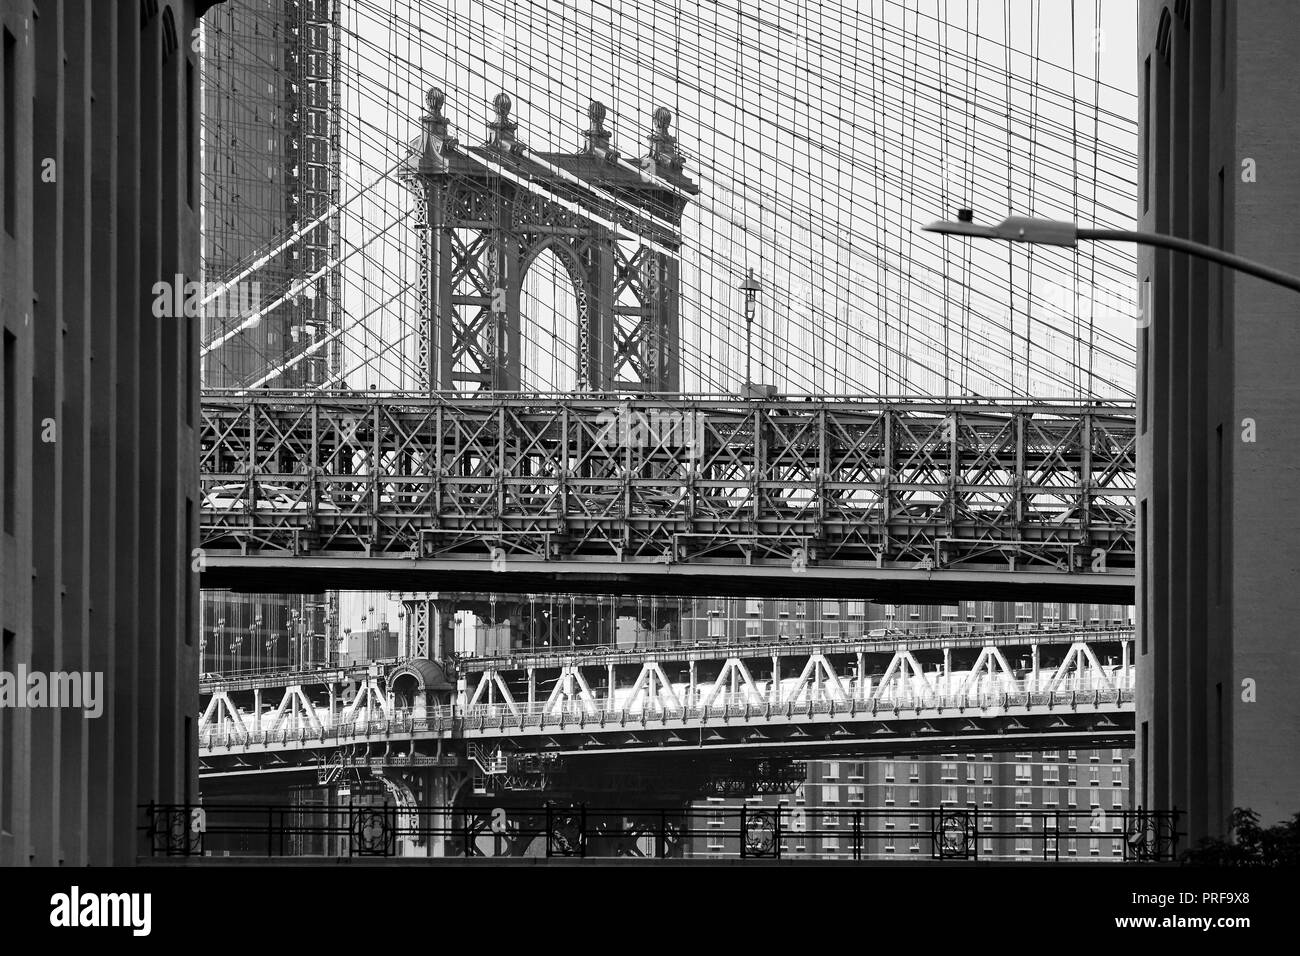 Black and white picture of Brooklyn and Manhattan Bridge in one frame, New York City, USA - Stock Image